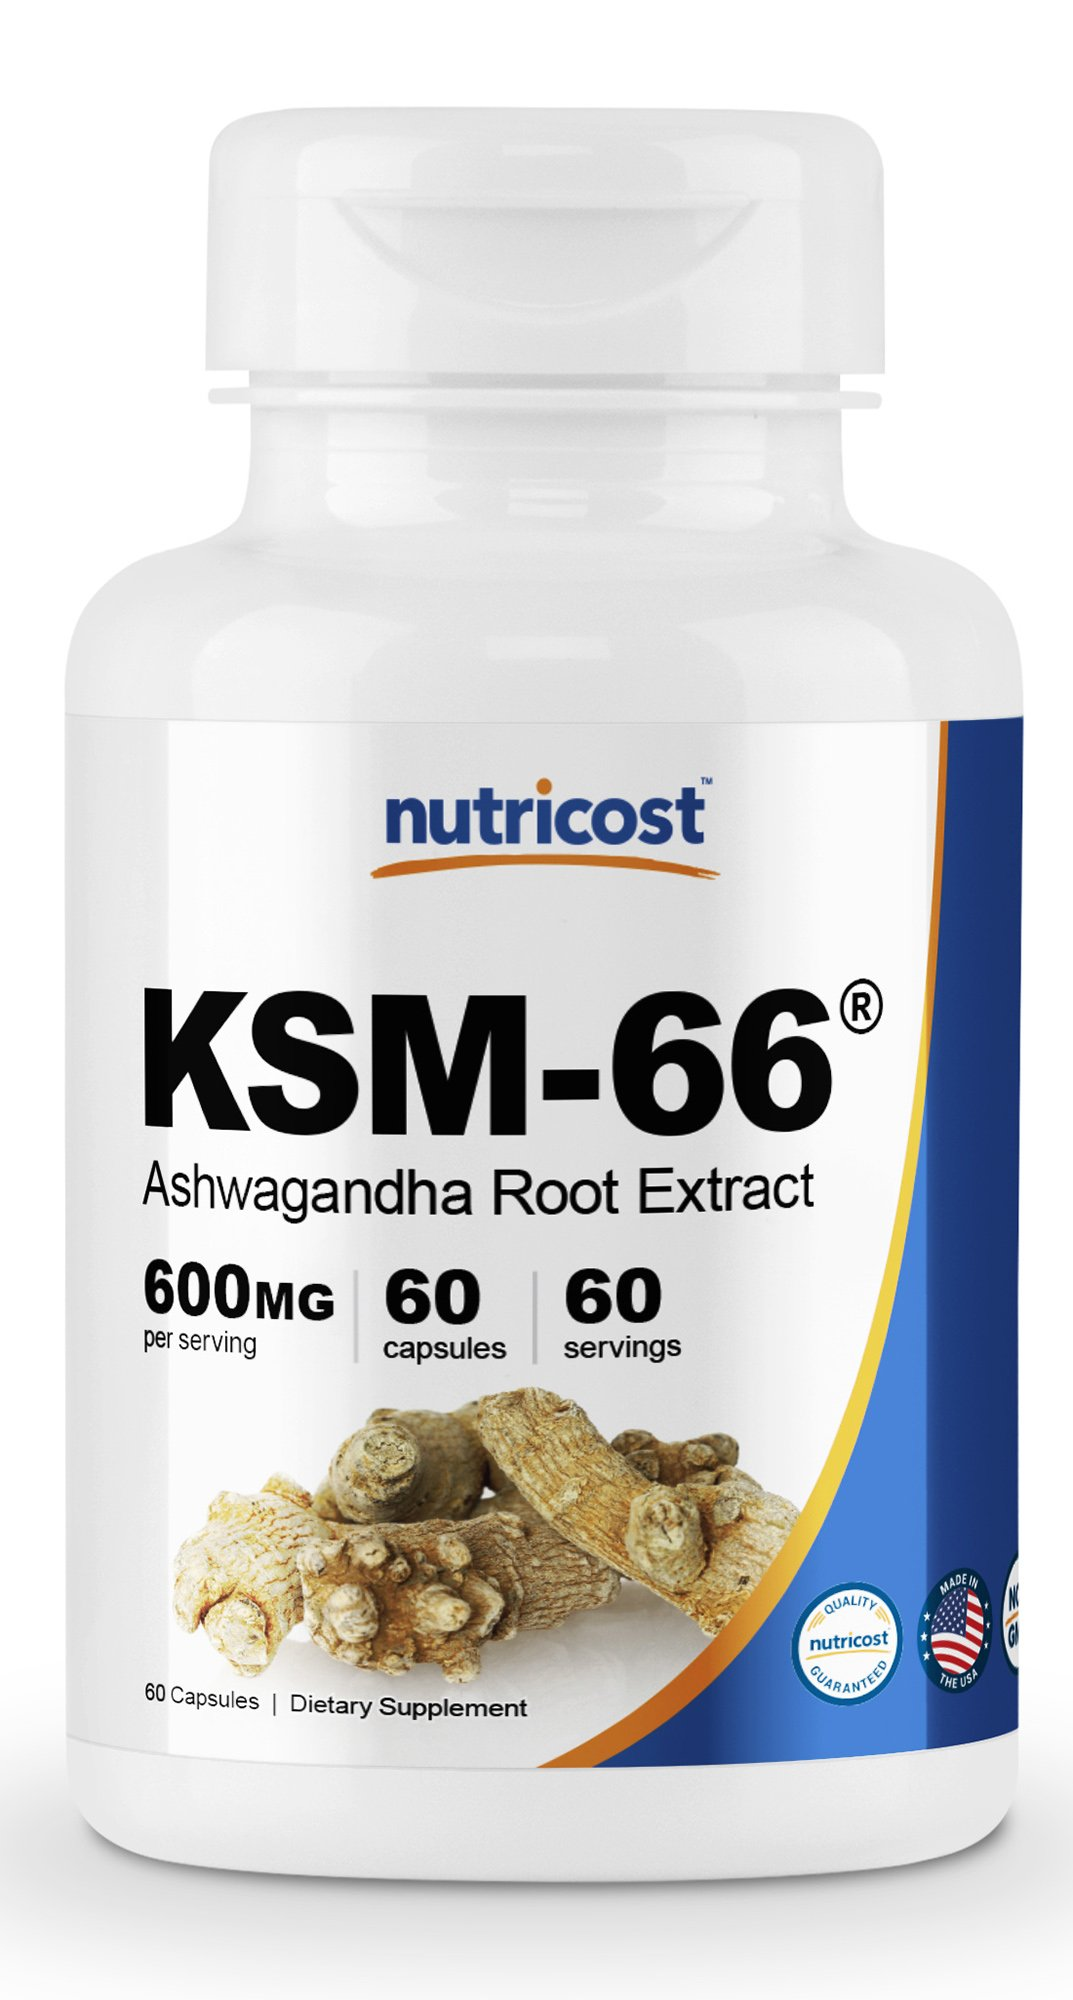 Nutricost KSM-66 Ashwagandha Root Extract 600mg, 60 Veggie Caps - High Potency 5% Withanolides - with BioPerine - Organic Full-Spectrum Root Extract by Nutricost